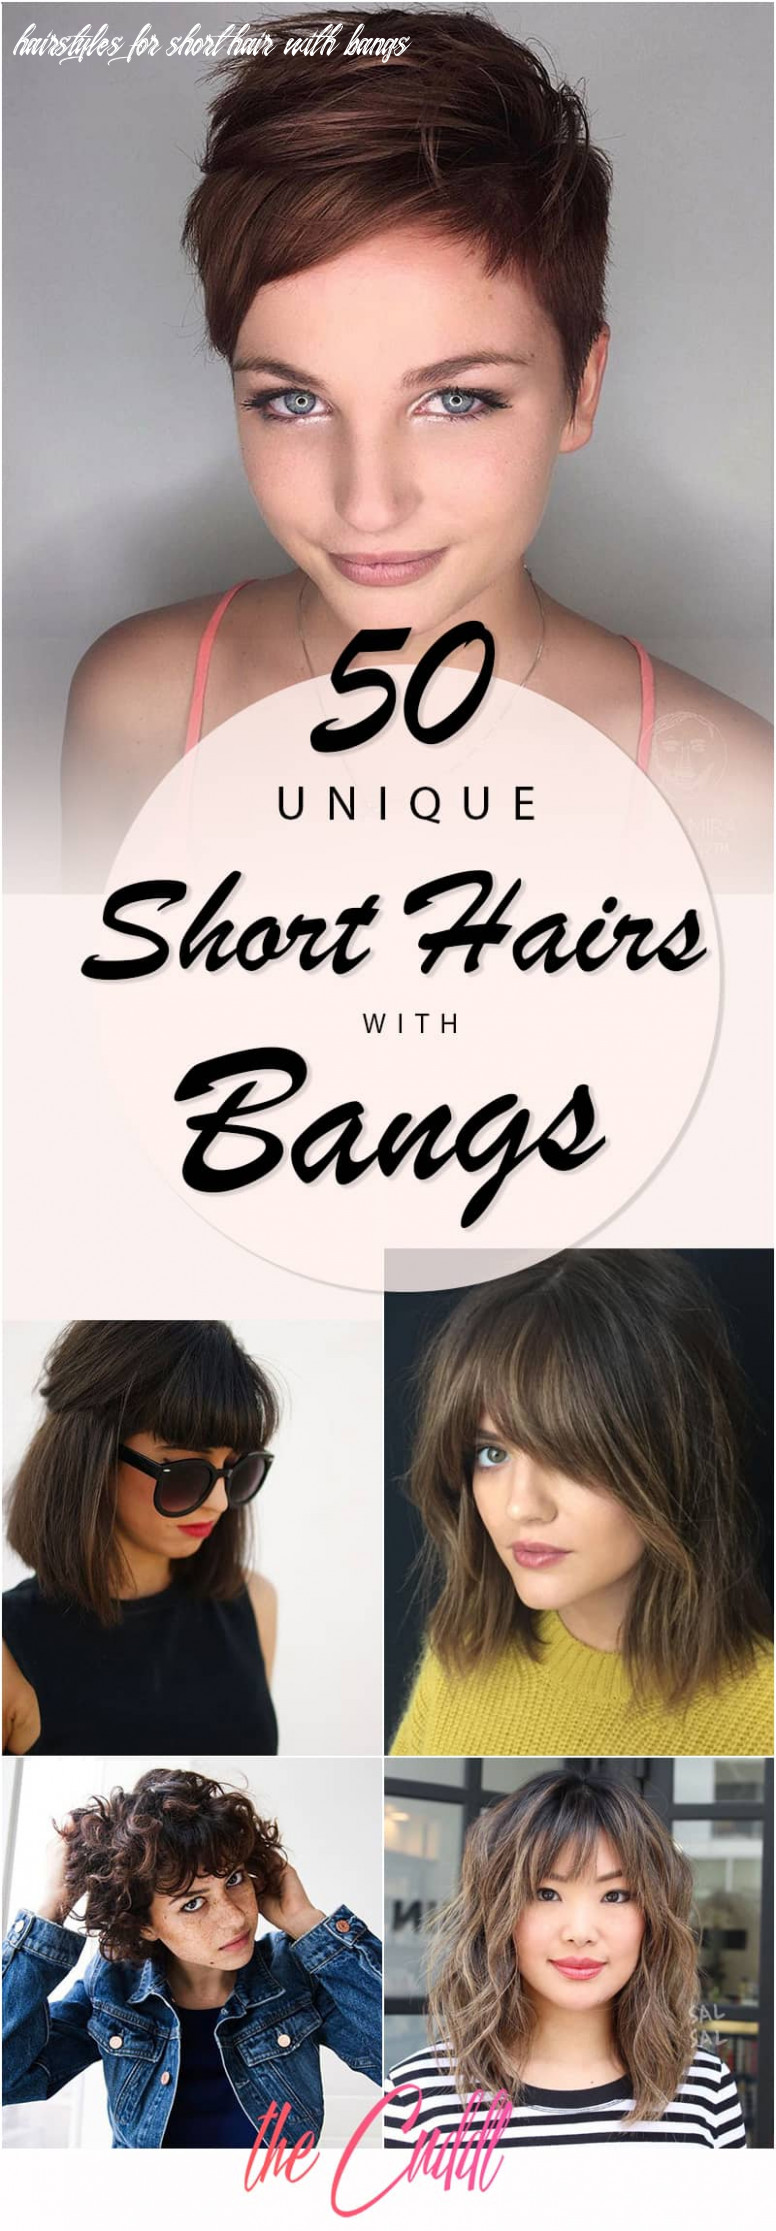 12 Ways to Wear Short Hair with Bangs for a Fresh New Look